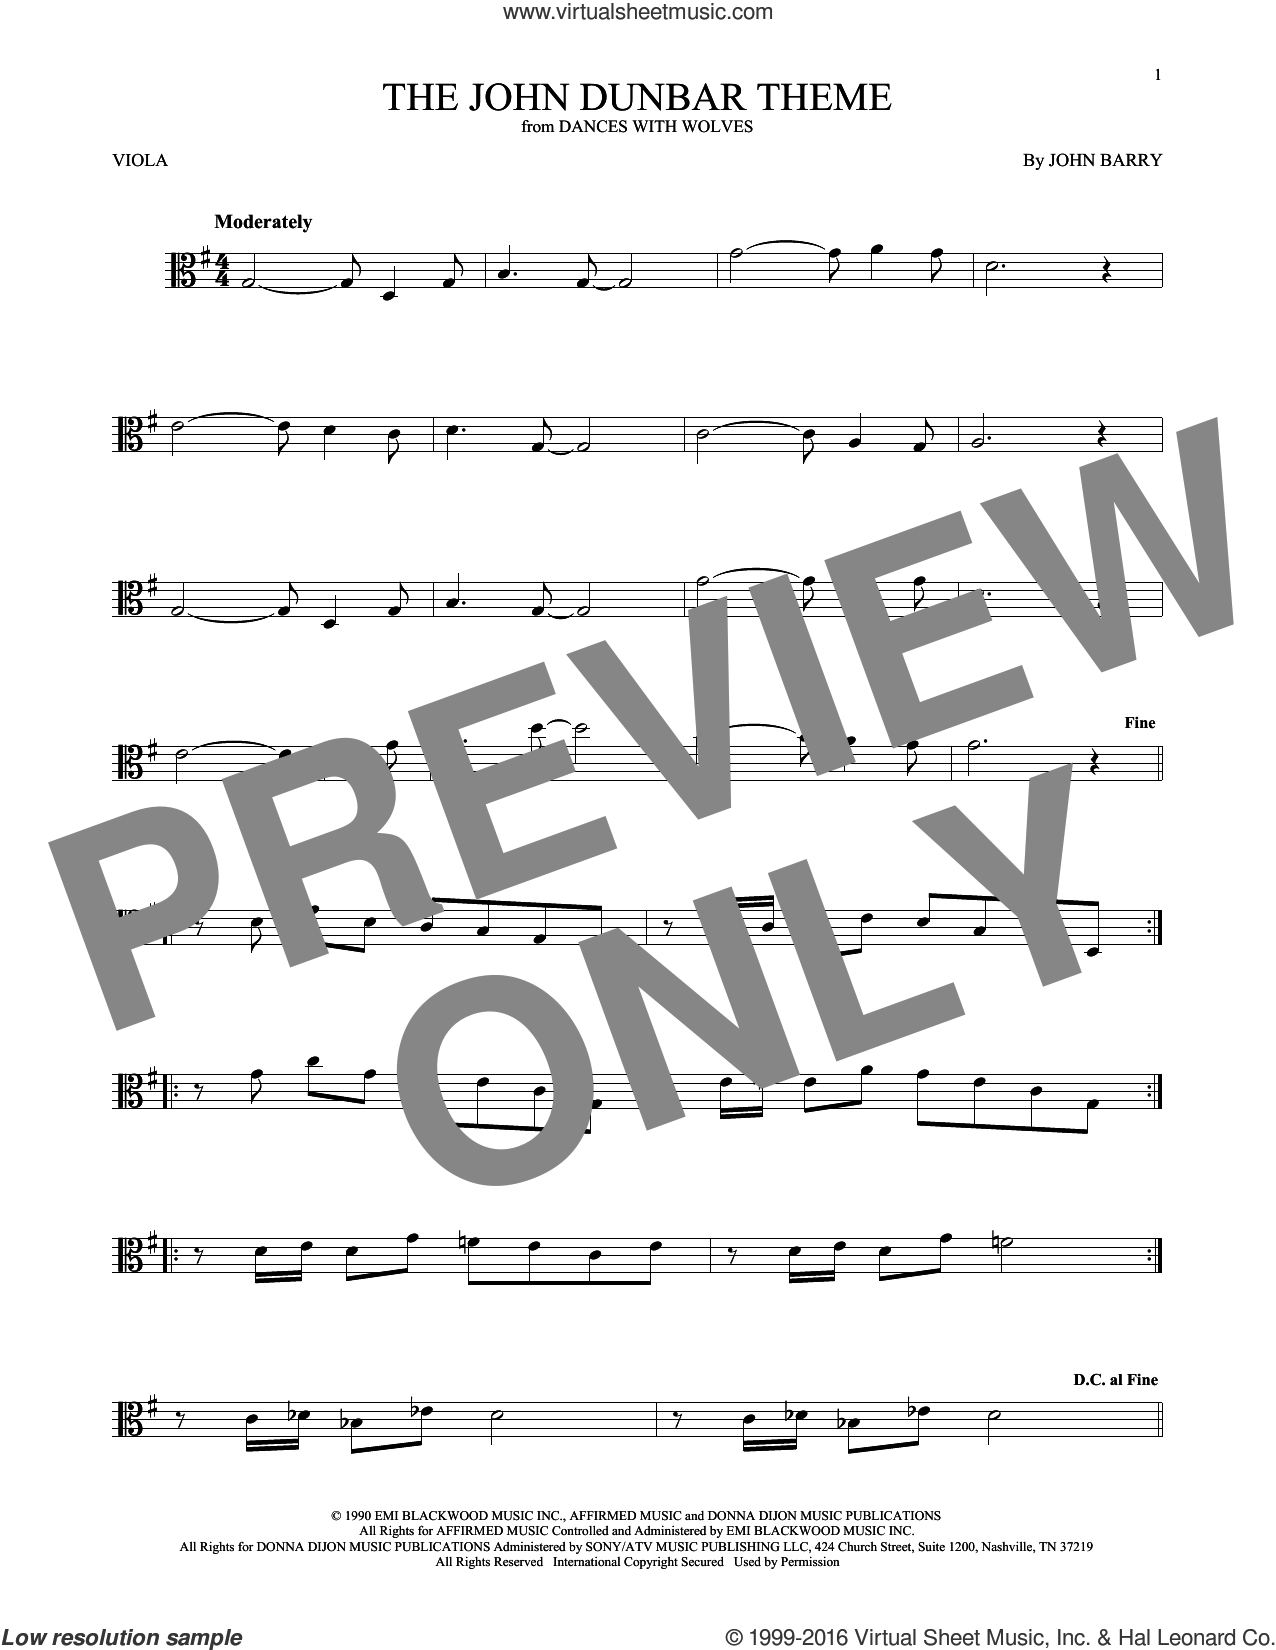 The John Dunbar Theme sheet music for viola solo by John Barry, intermediate